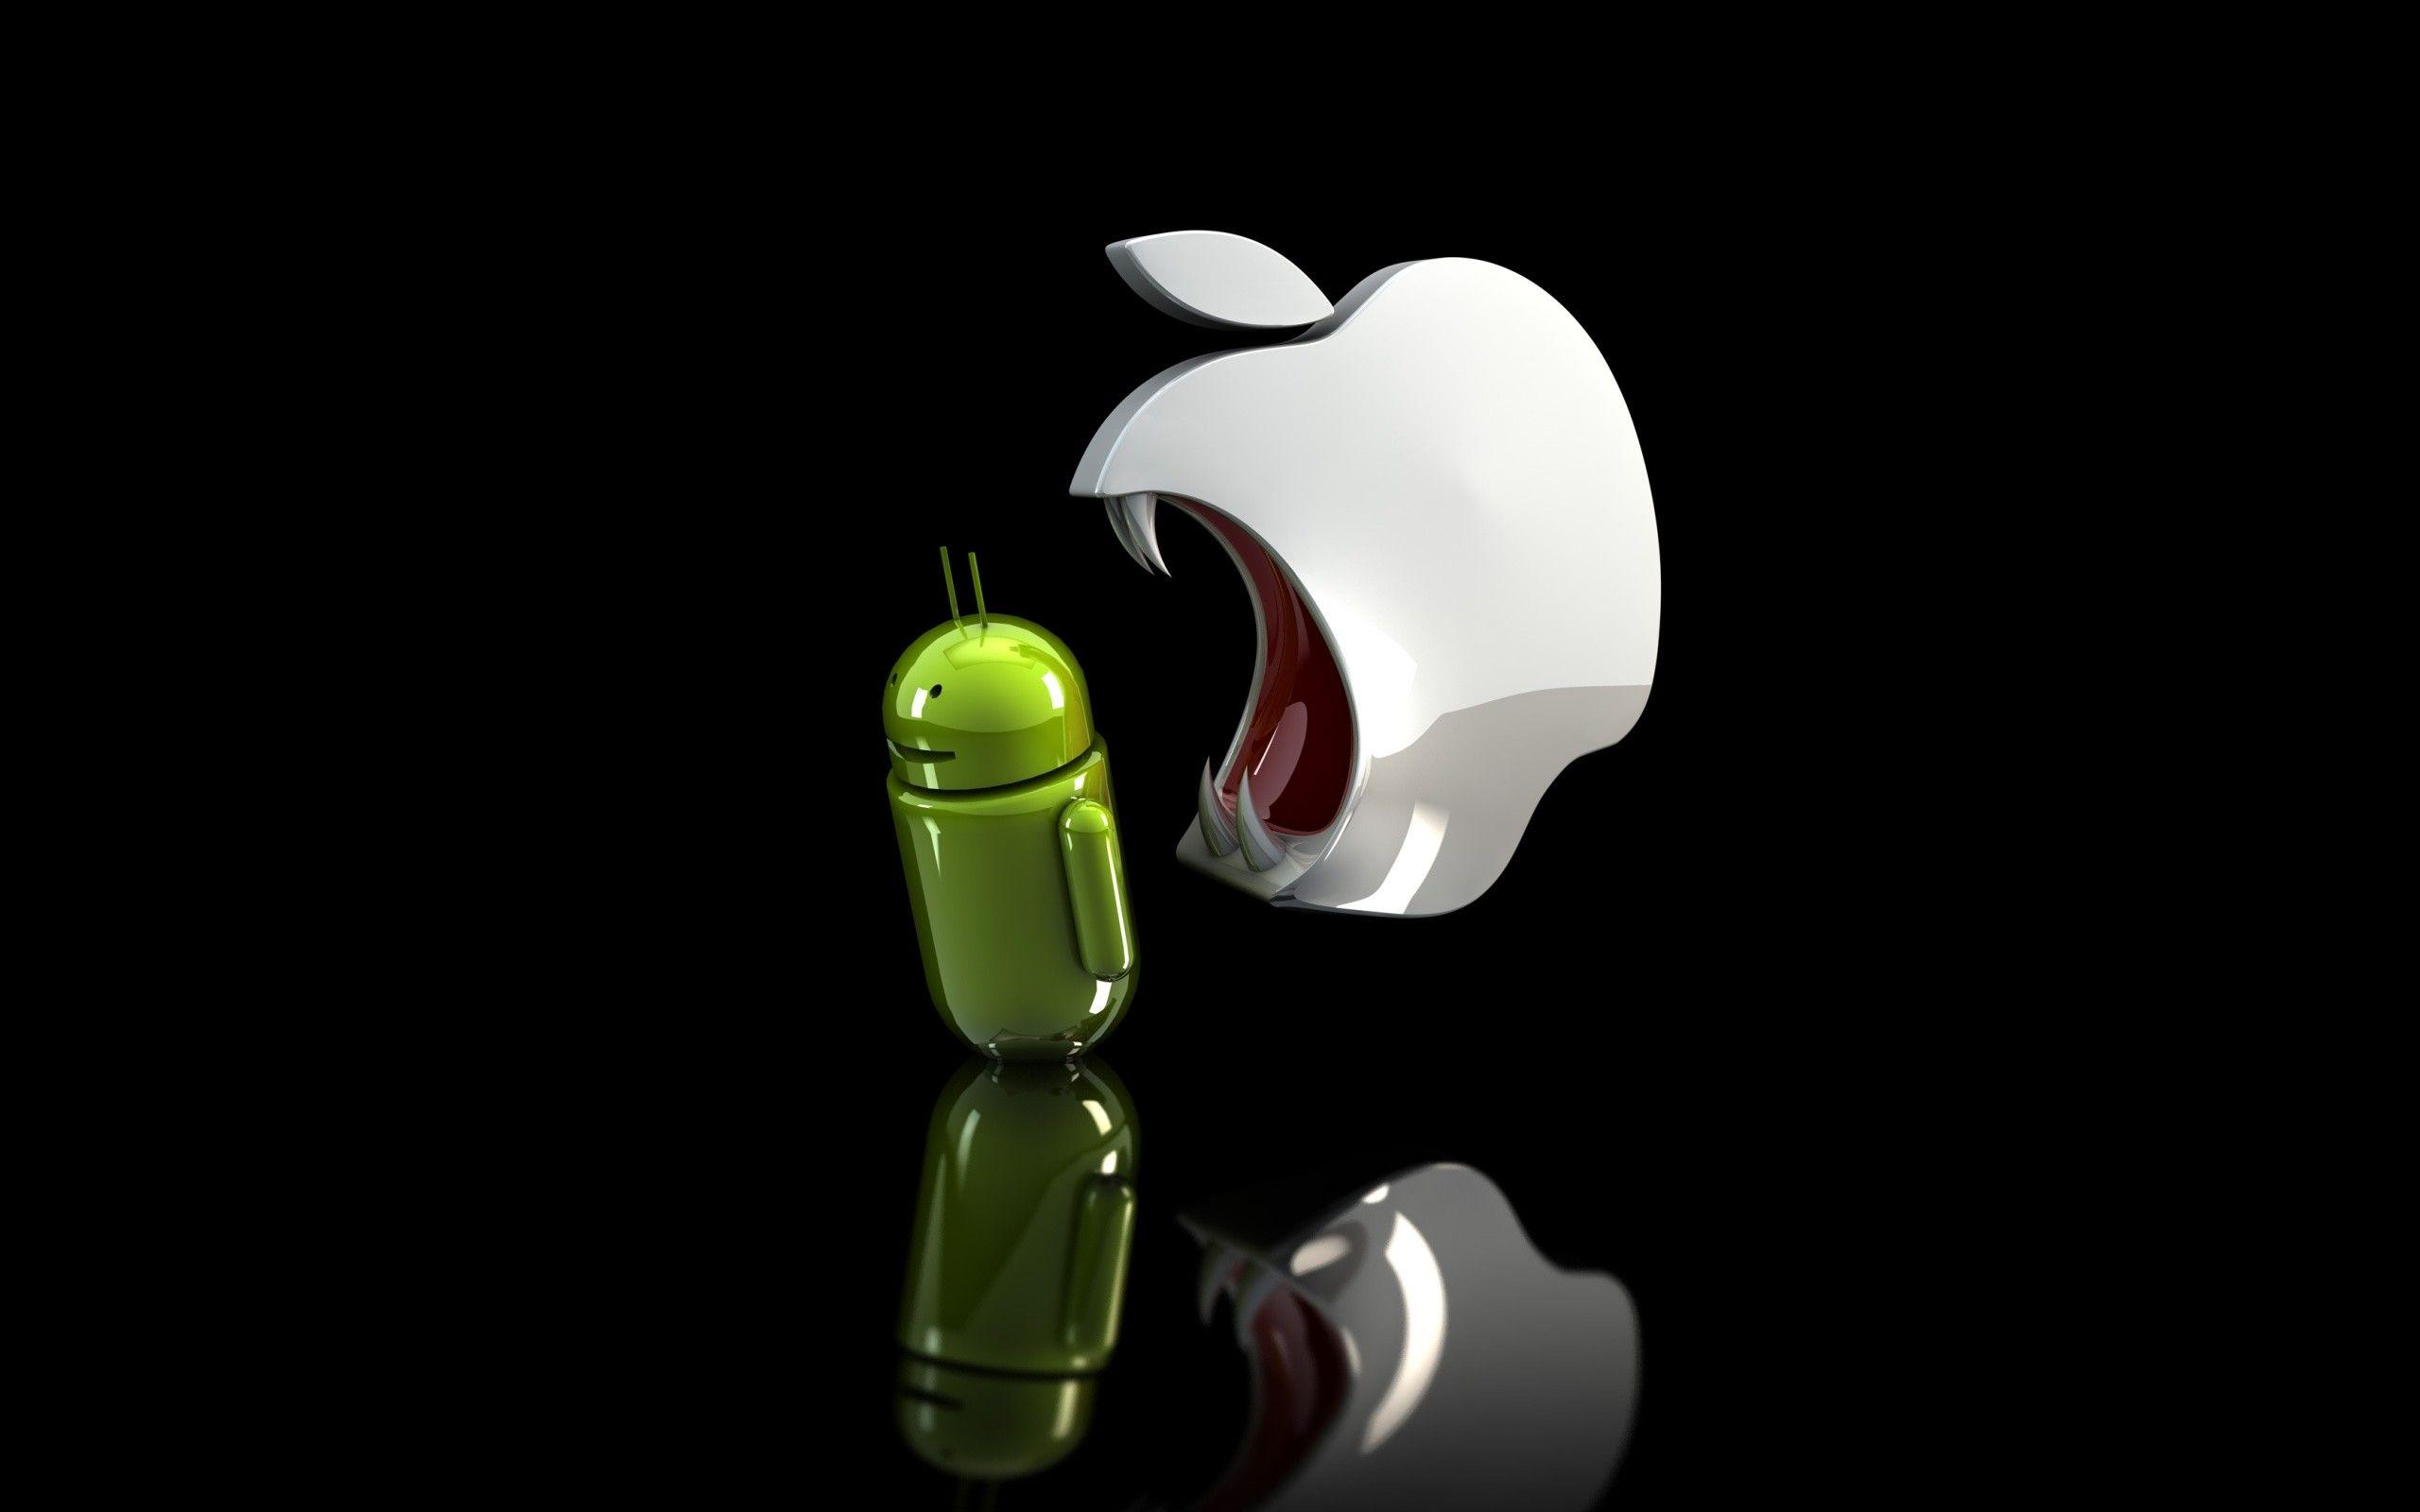 Android Vs Apple Hd Wallpapers Wallpaper Cave